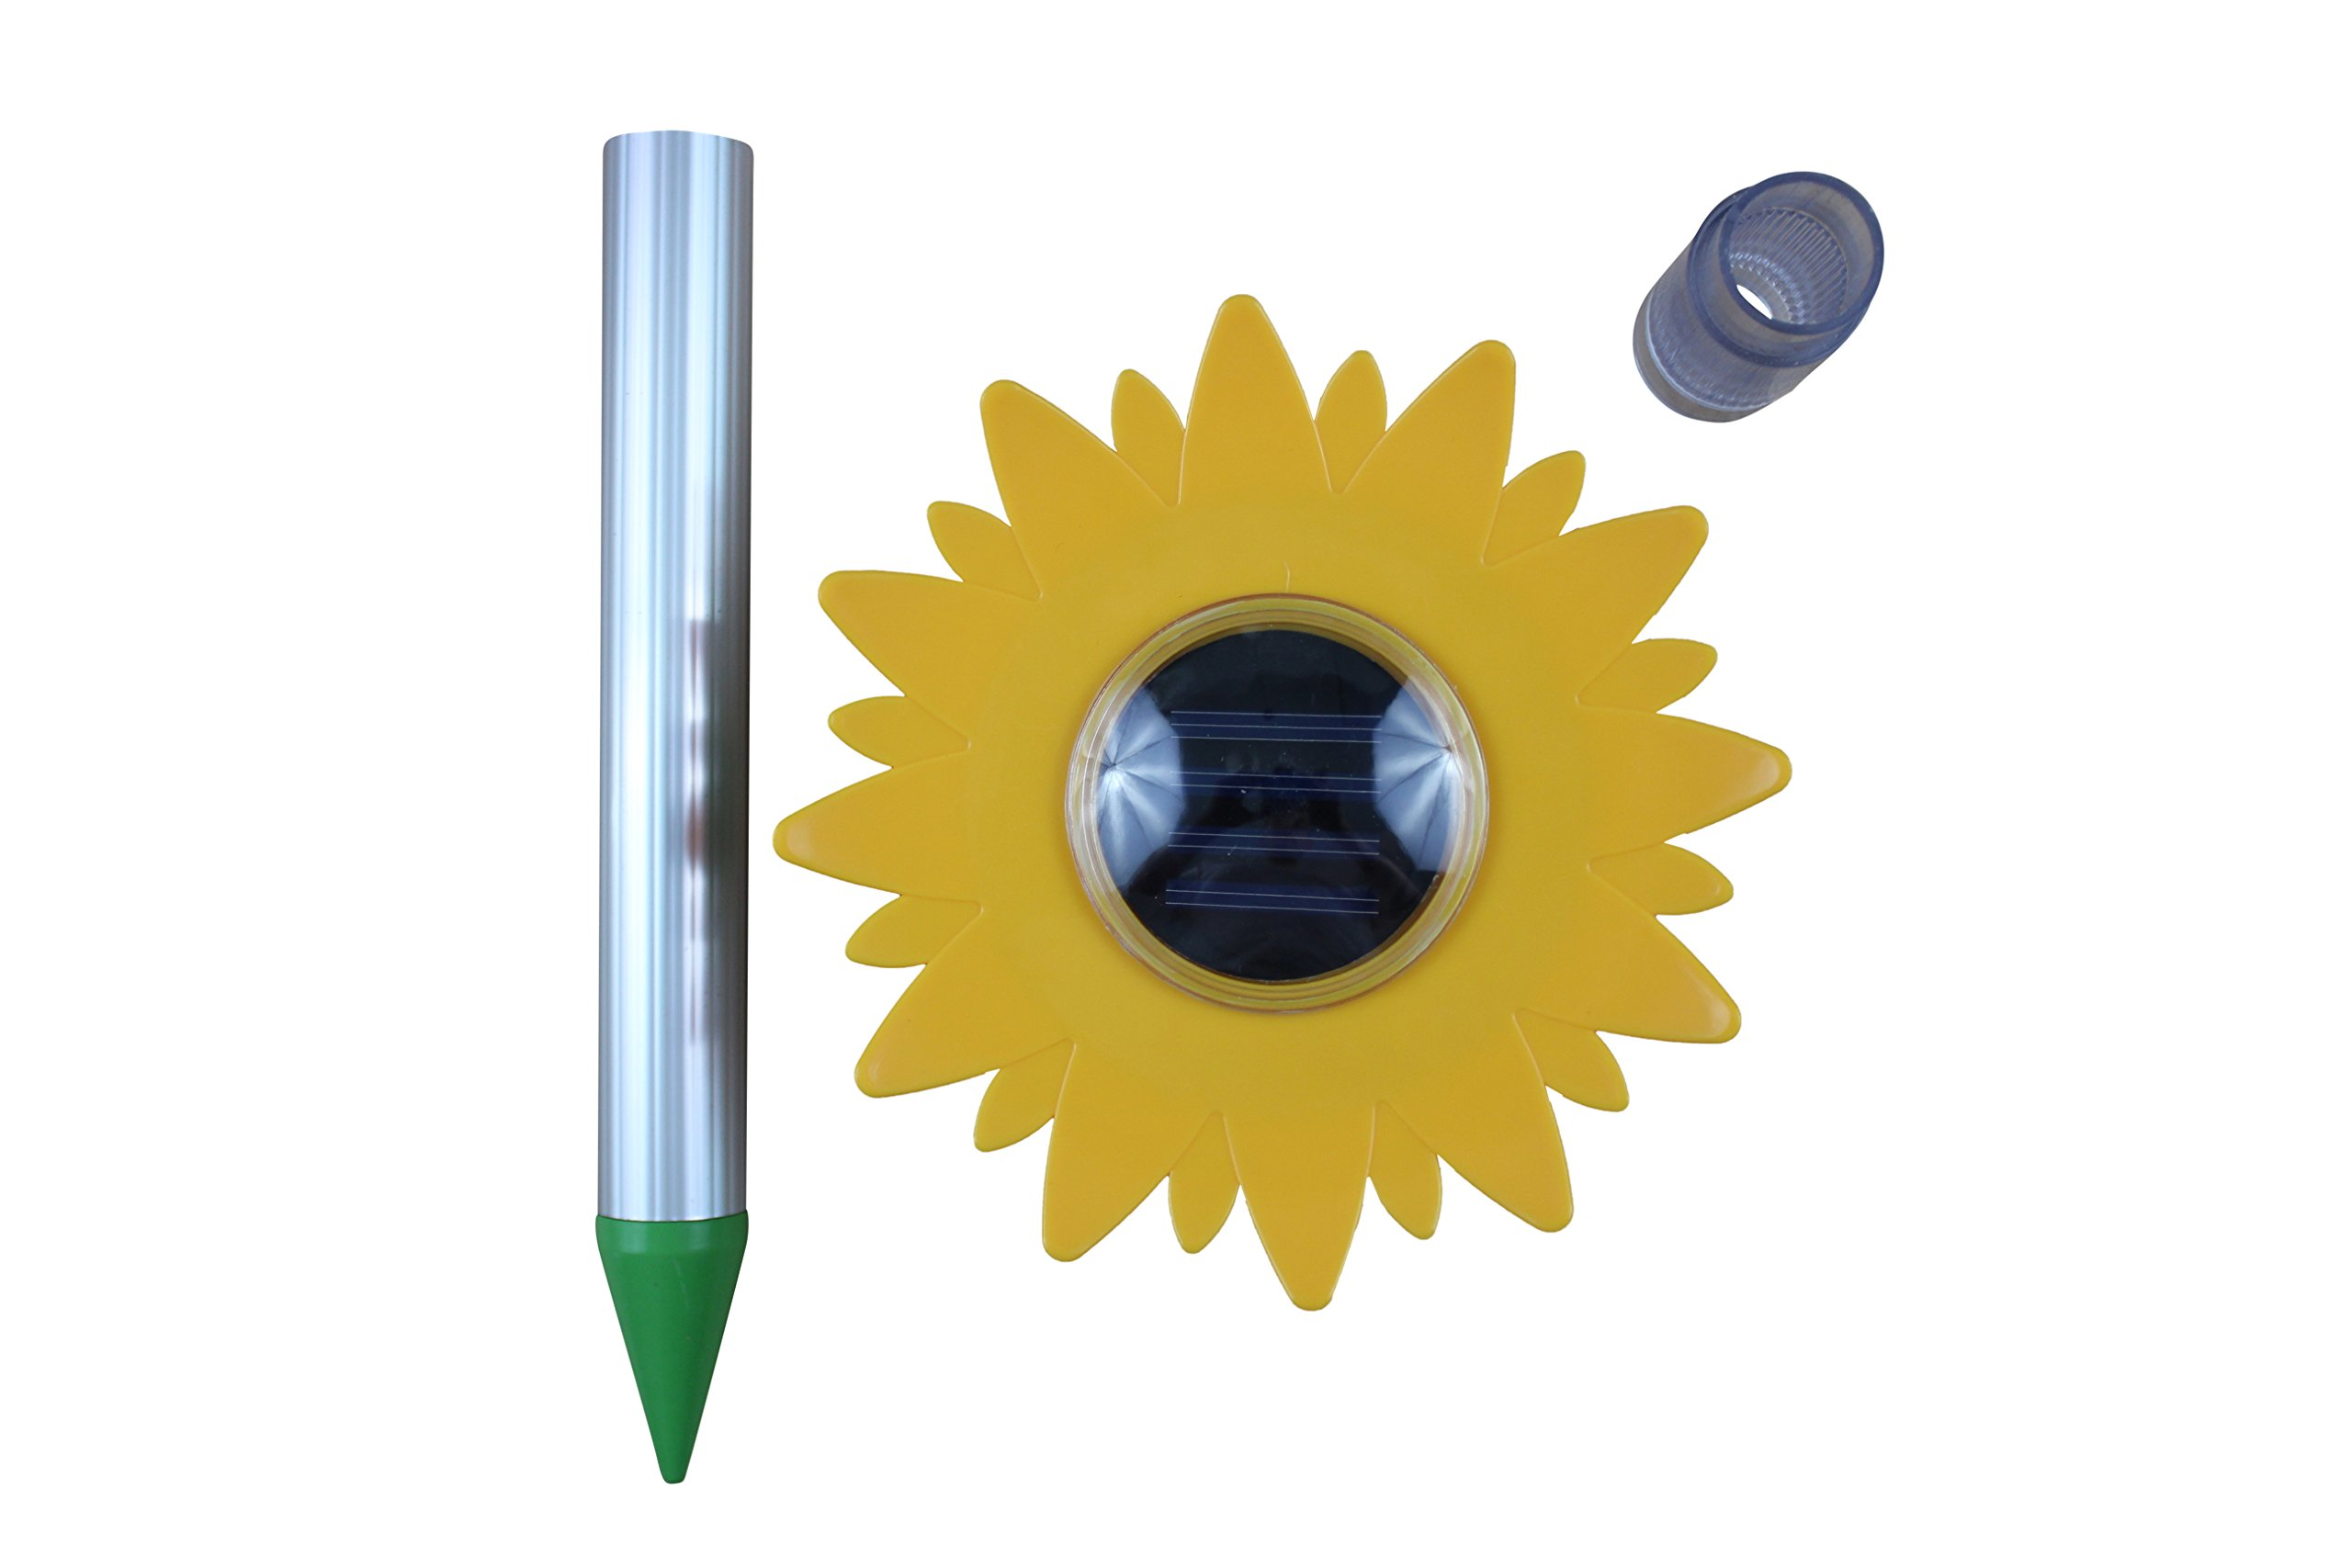 Mole Repeller UltraSonic Solar - Voles, Shrews, Gophers Repellent Flower